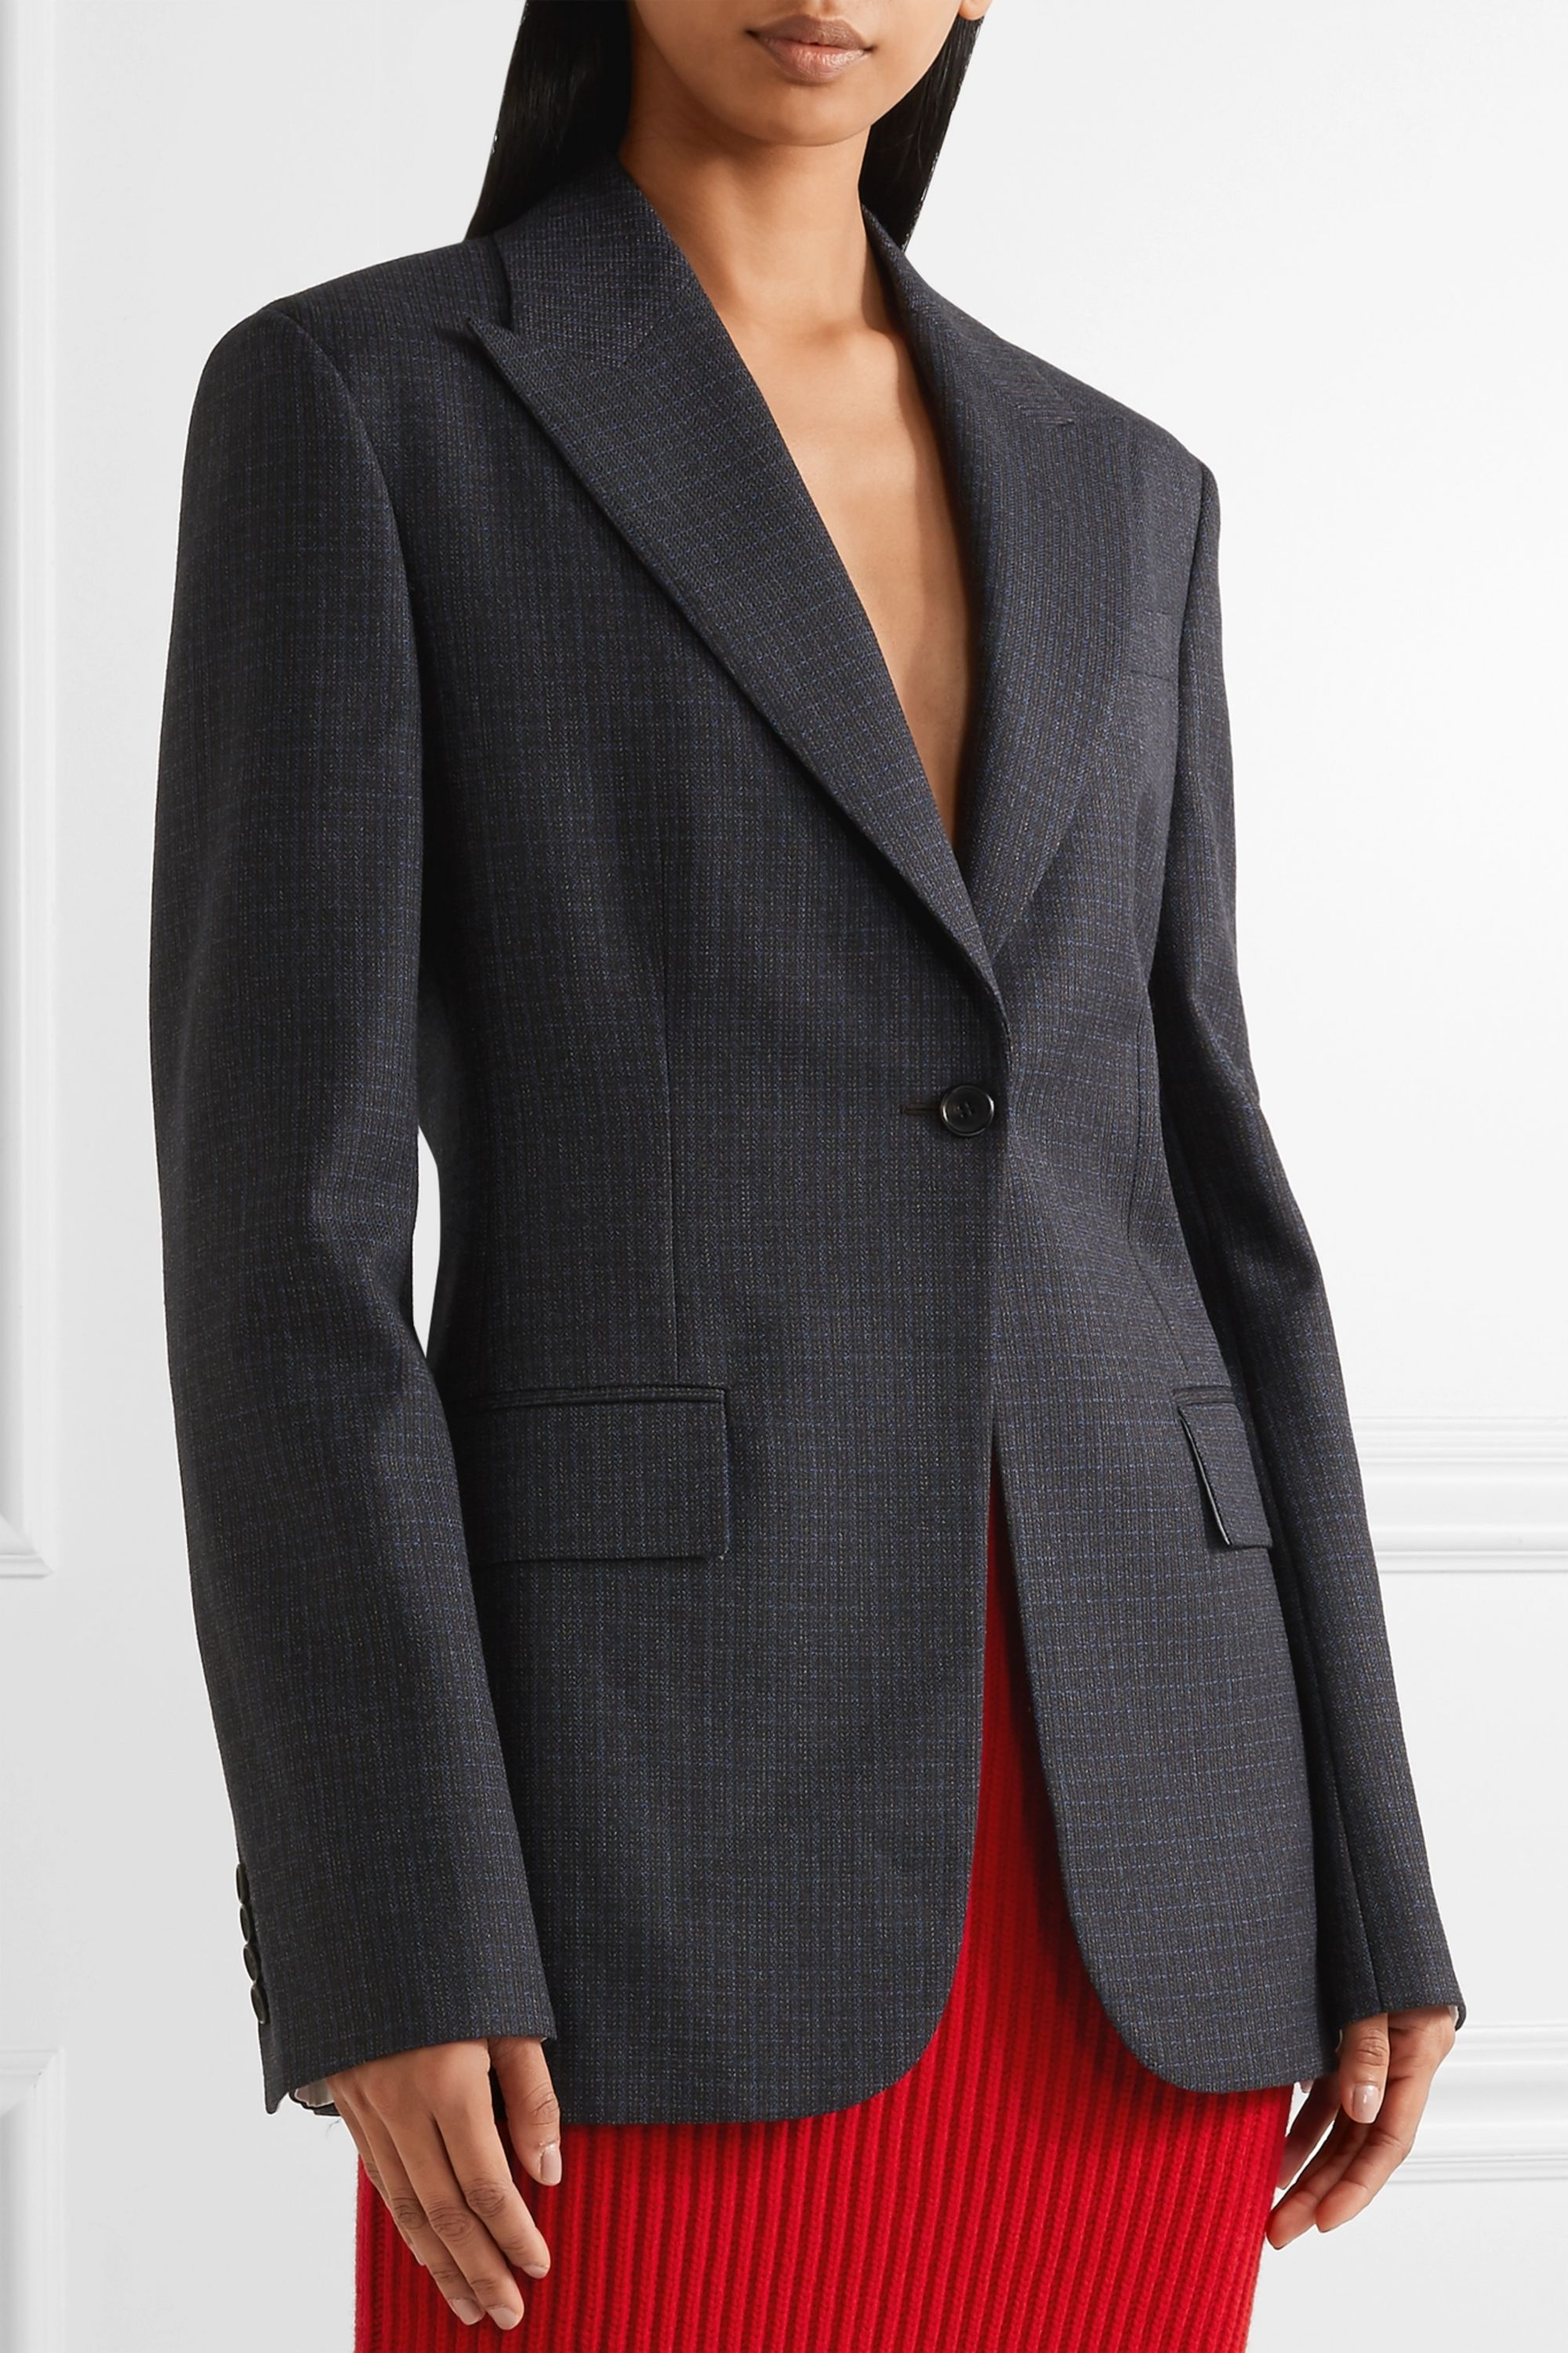 CALVIN KLEIN 205W39NYC Checked wool blazer